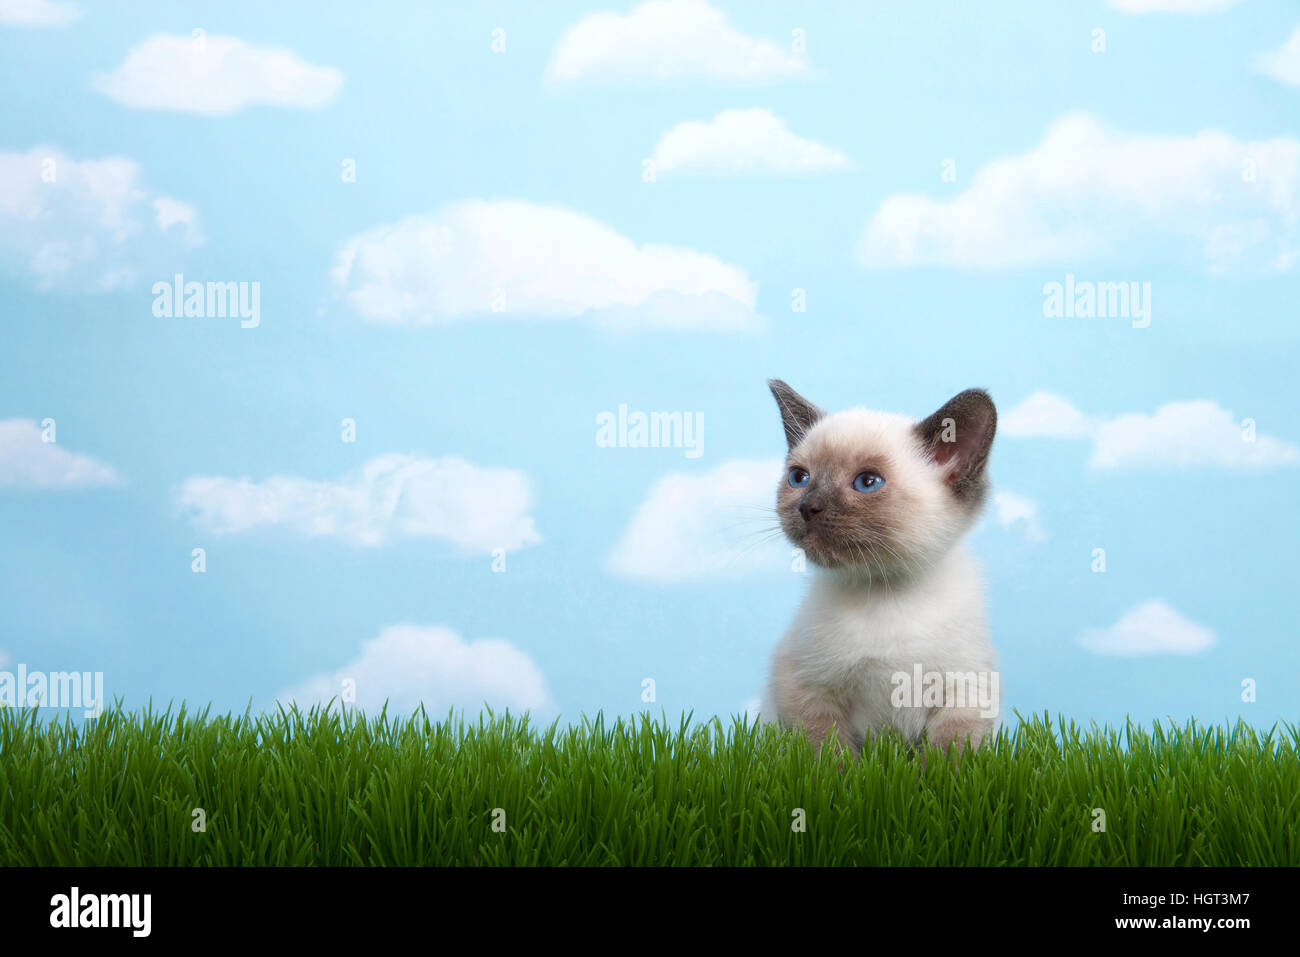 One tiny siamese kitten with munchkin traits sitting in grass looking up and to viewers left. Blue background, sky - Stock Image